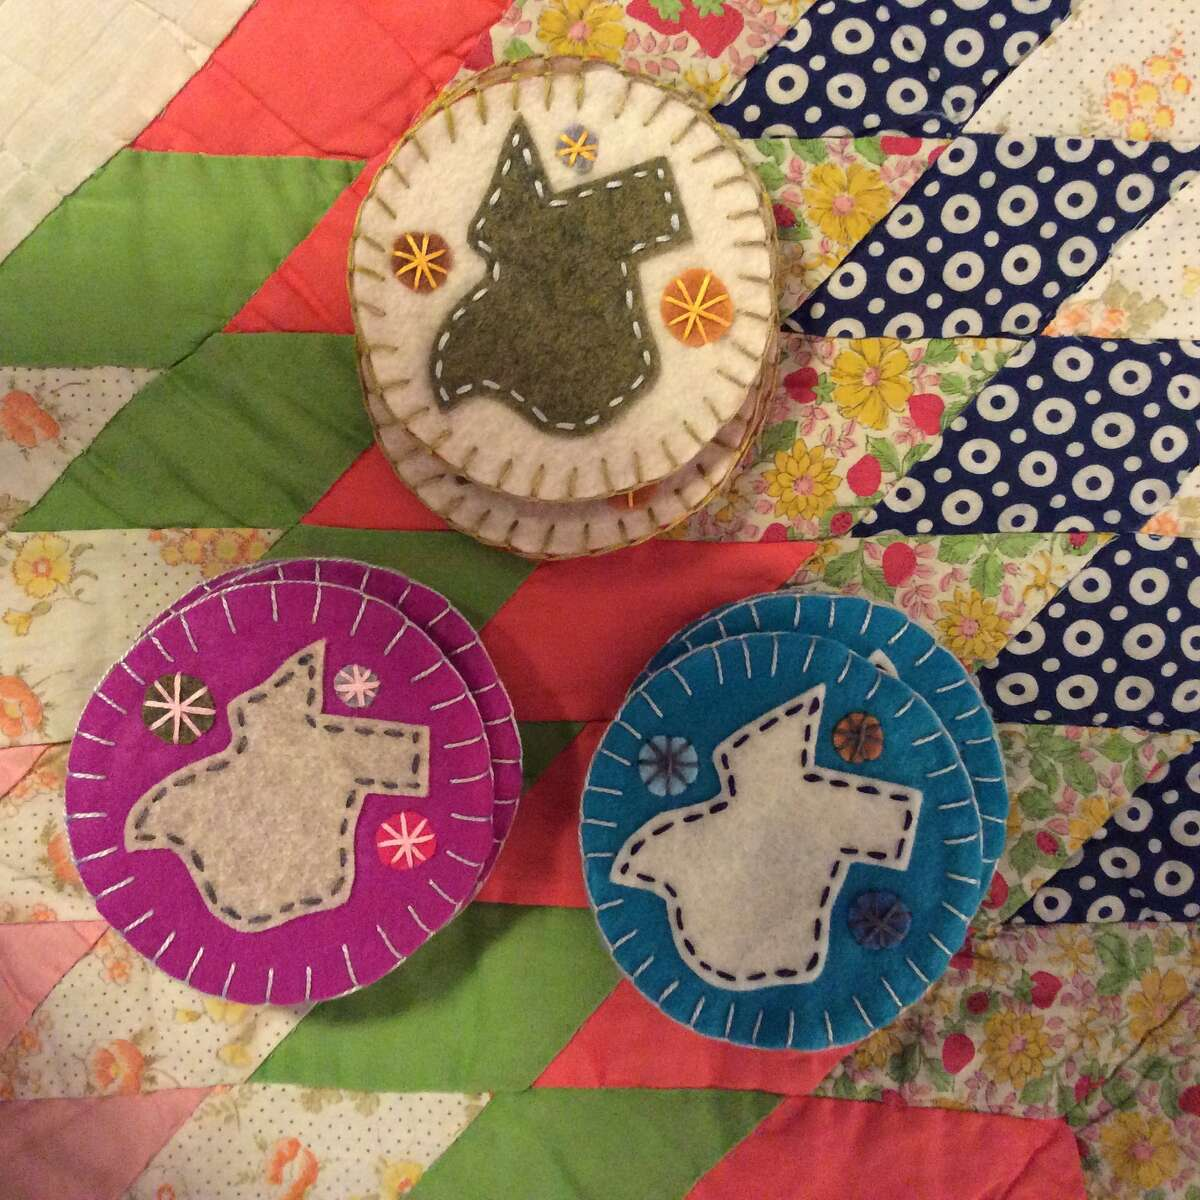 Pancho and Leftey's Dena Yanowski, a lifelong Houstonian, celebrates her city with her crafts. The most famous among them are Astrodome-shaped Christmas ornaments. Sheéll be offering those as well as pillows, coasters and other felt creations at the Pop Shop Houston Holiday Festival Nov. 28-30, 2014.